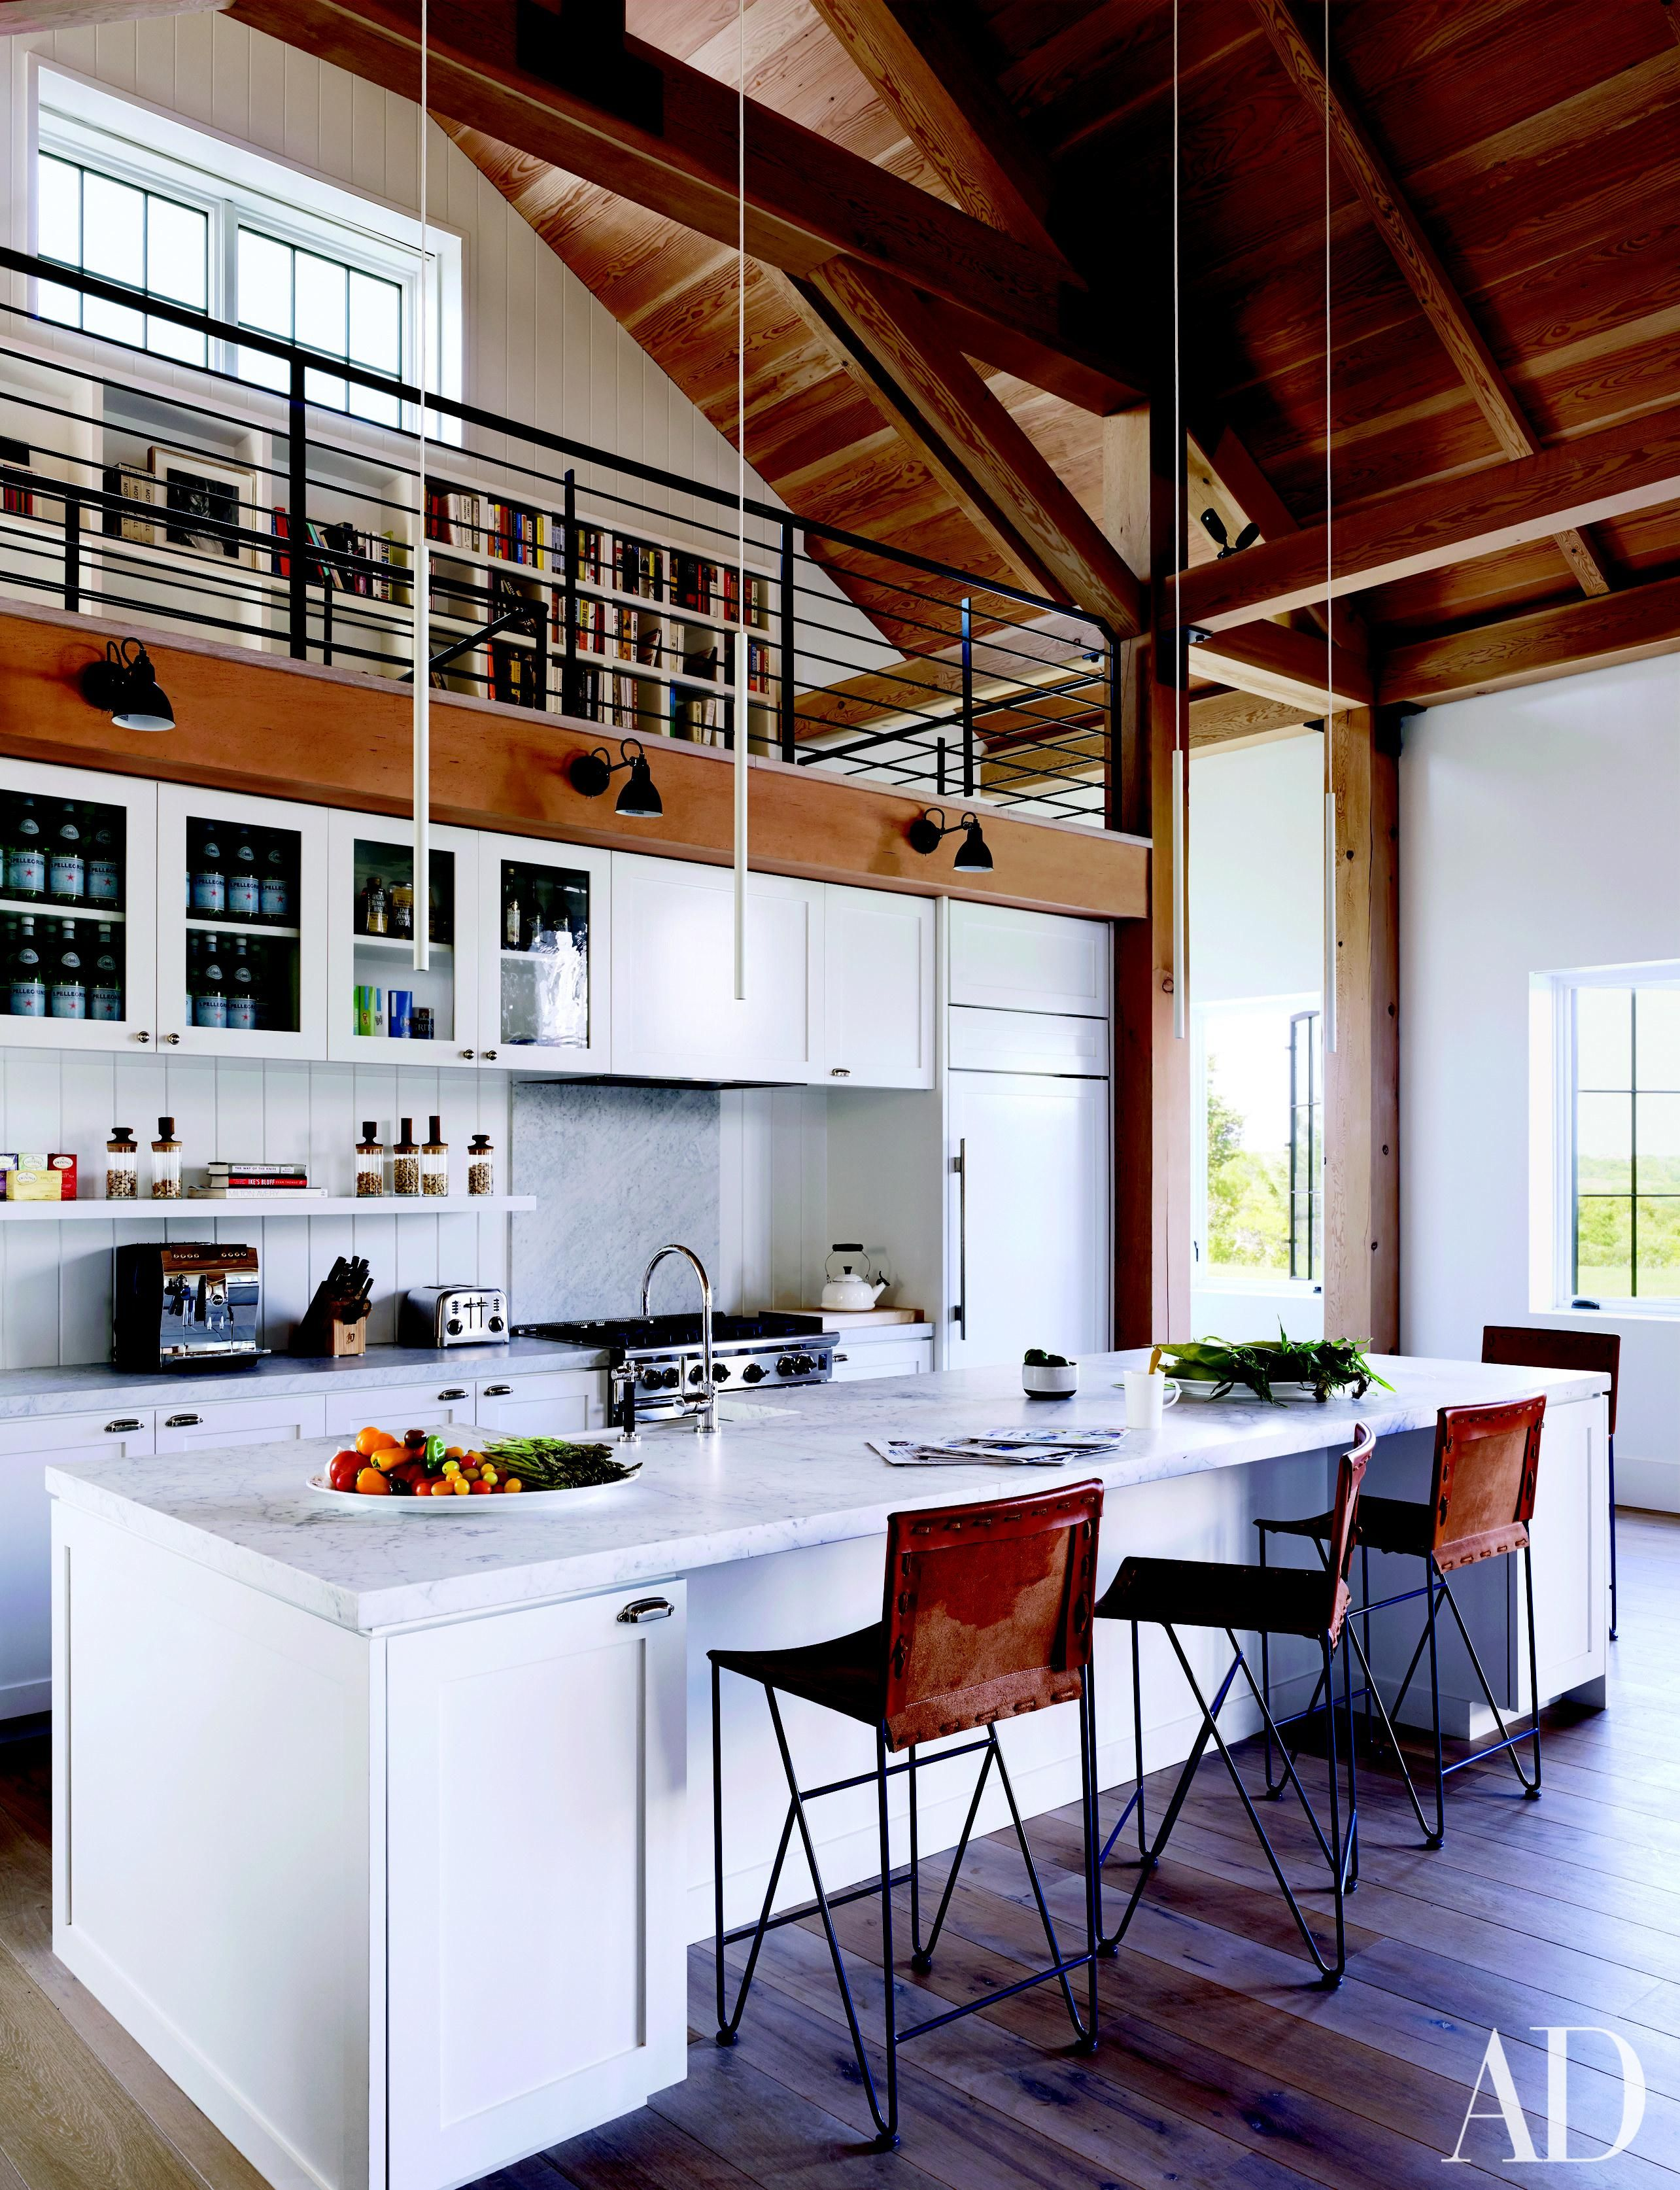 Get The Look Of This Modern Beach House Kitchen By Ashe Leandro Beach House Kitchens Interior Design Kitchen Home Kitchens